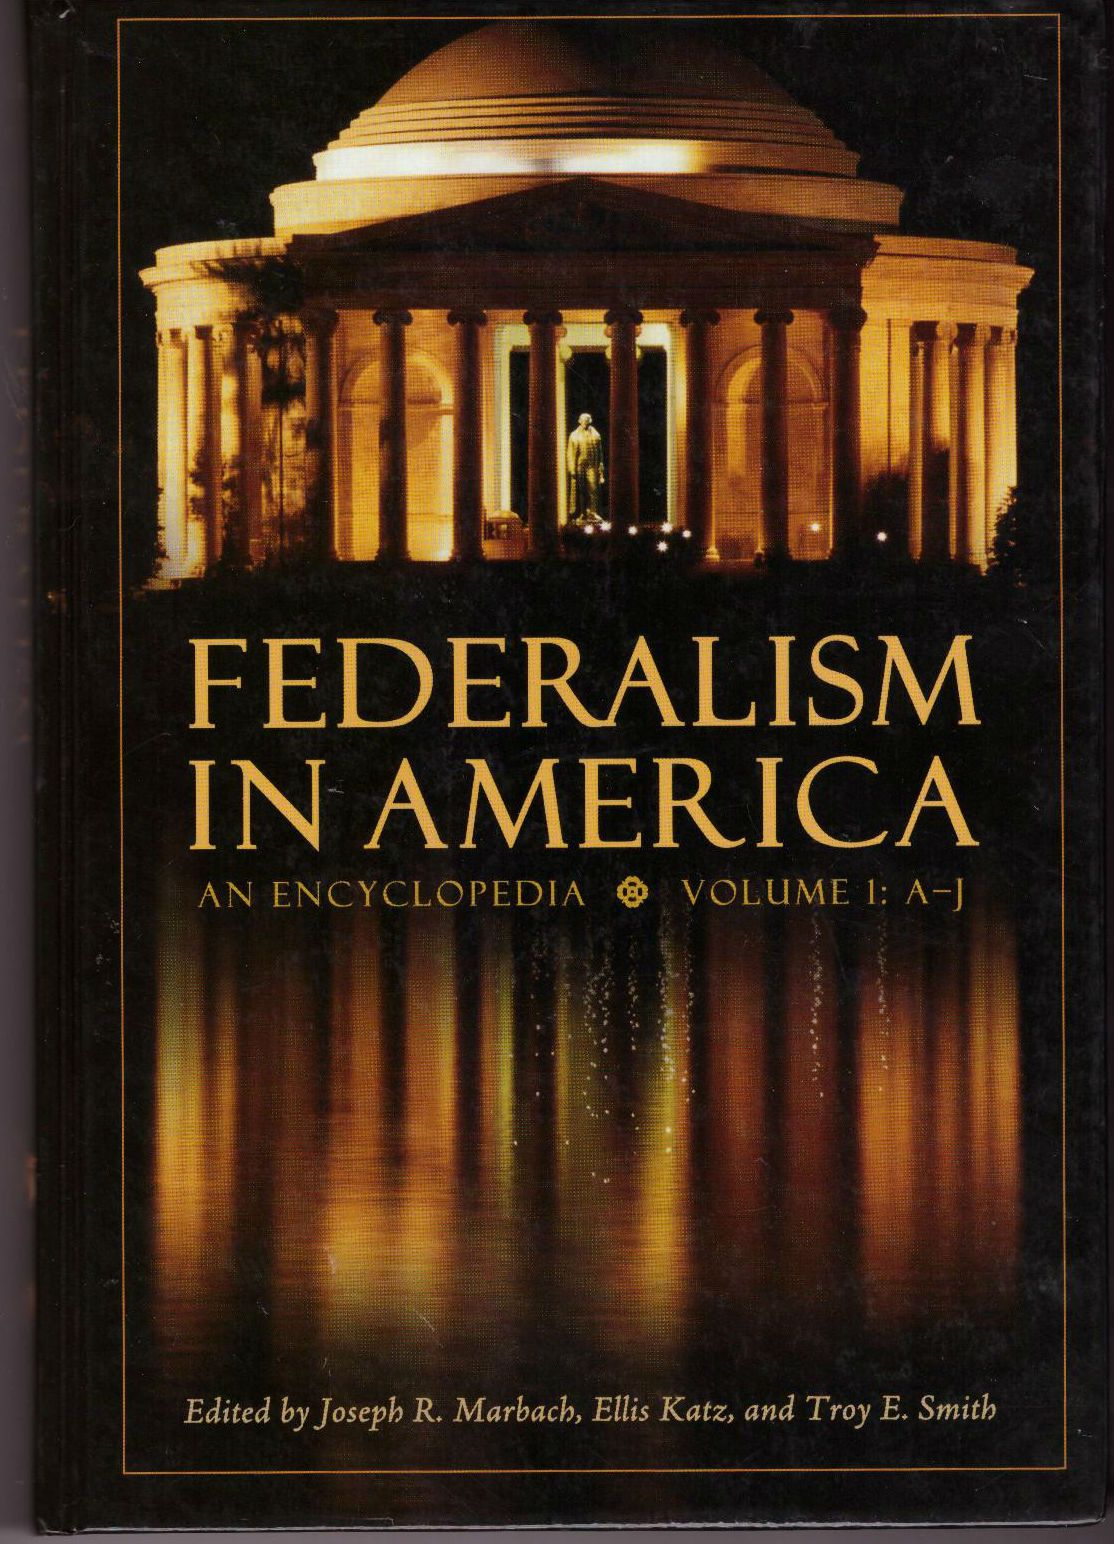 Federalism in America: An Encyclopedia, Volume I, A-J